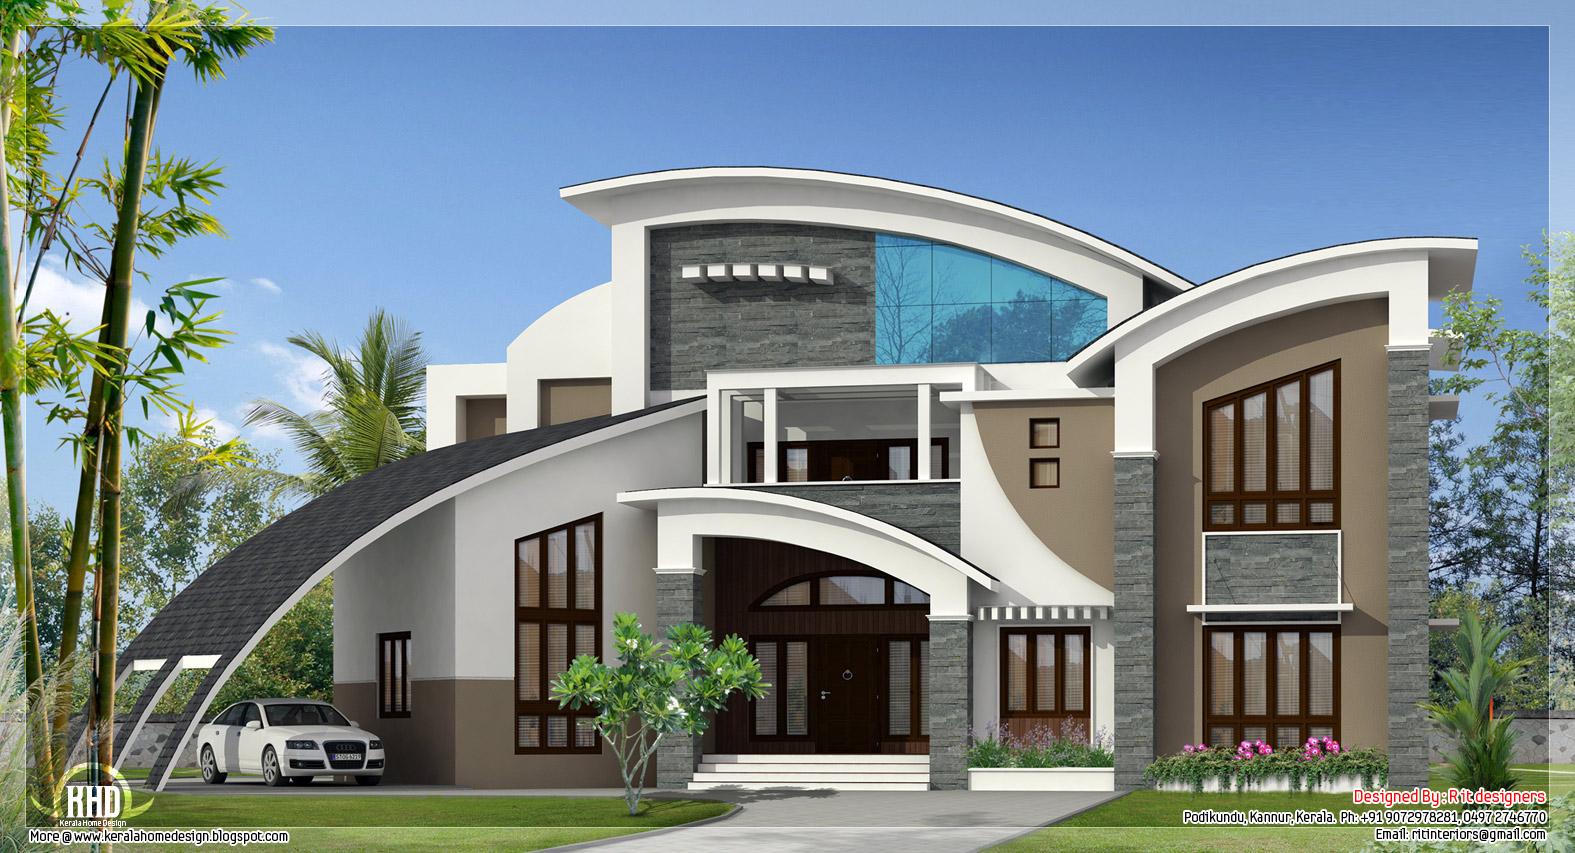 A unique super luxury kerala villa kerala home design and floor plans - Unique house design ...